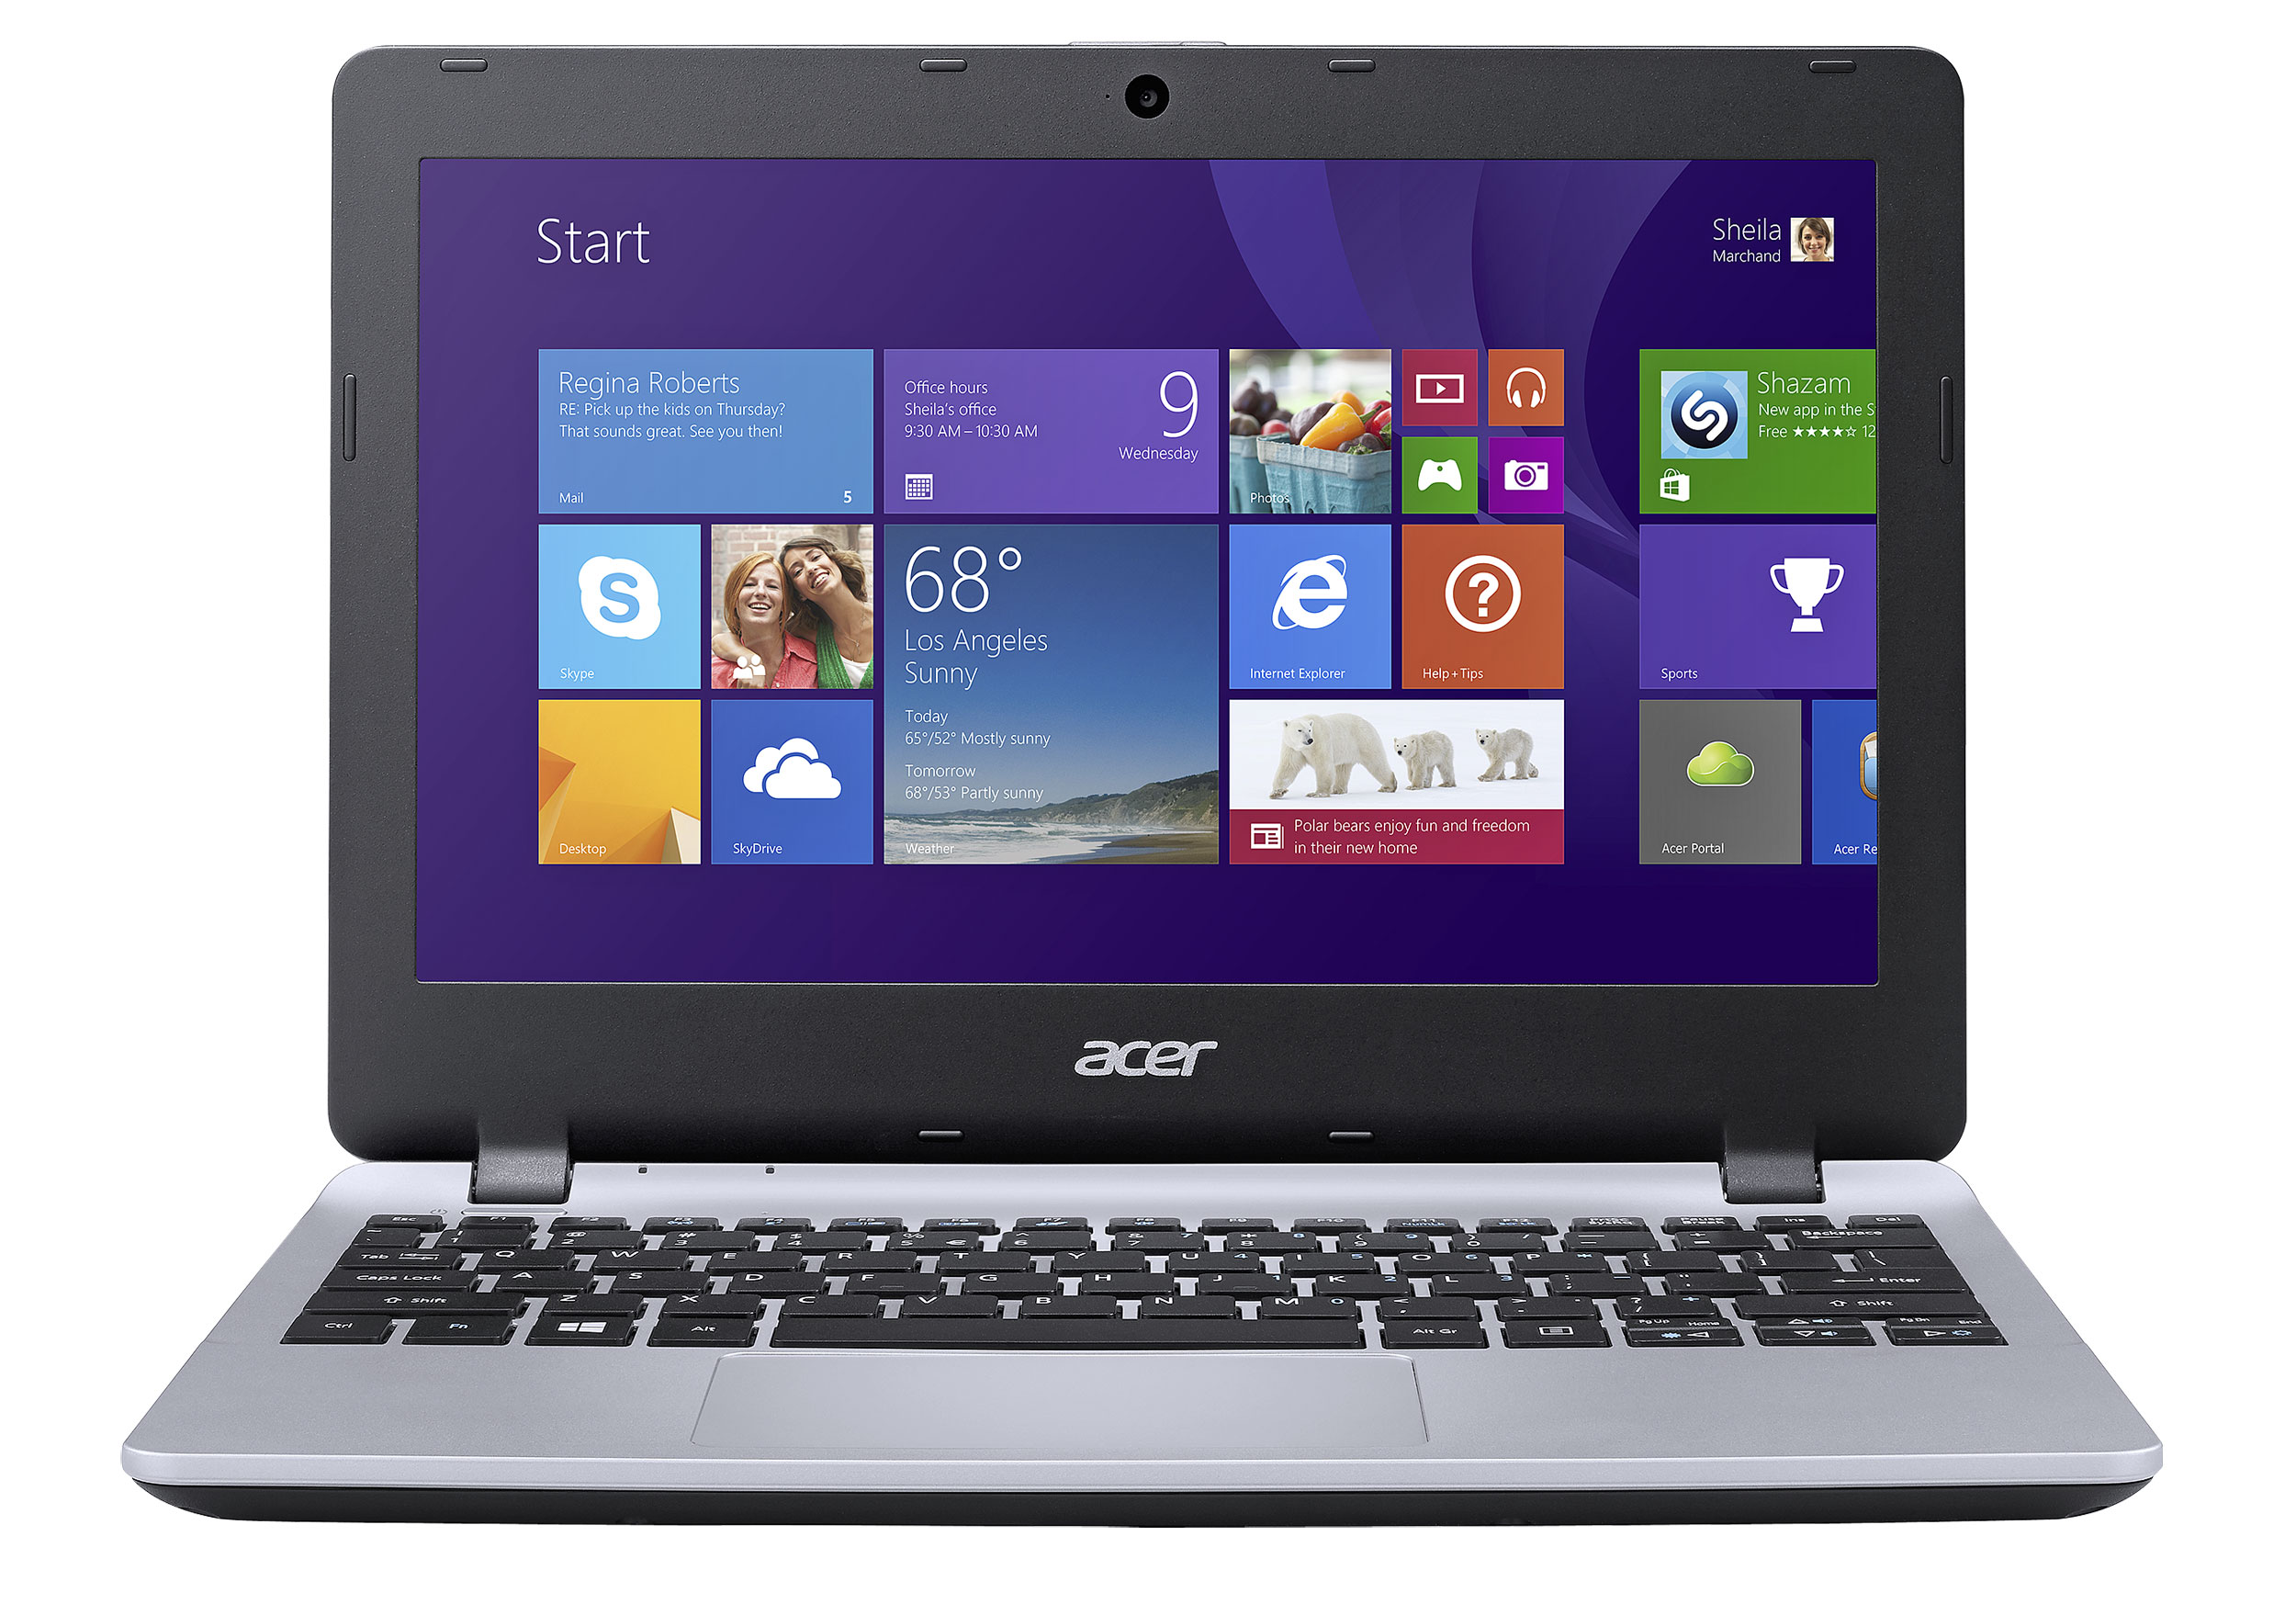 Acer Aspire E3112 Intel Celeron 2GB RAM 500GB HDD 116 Notebook